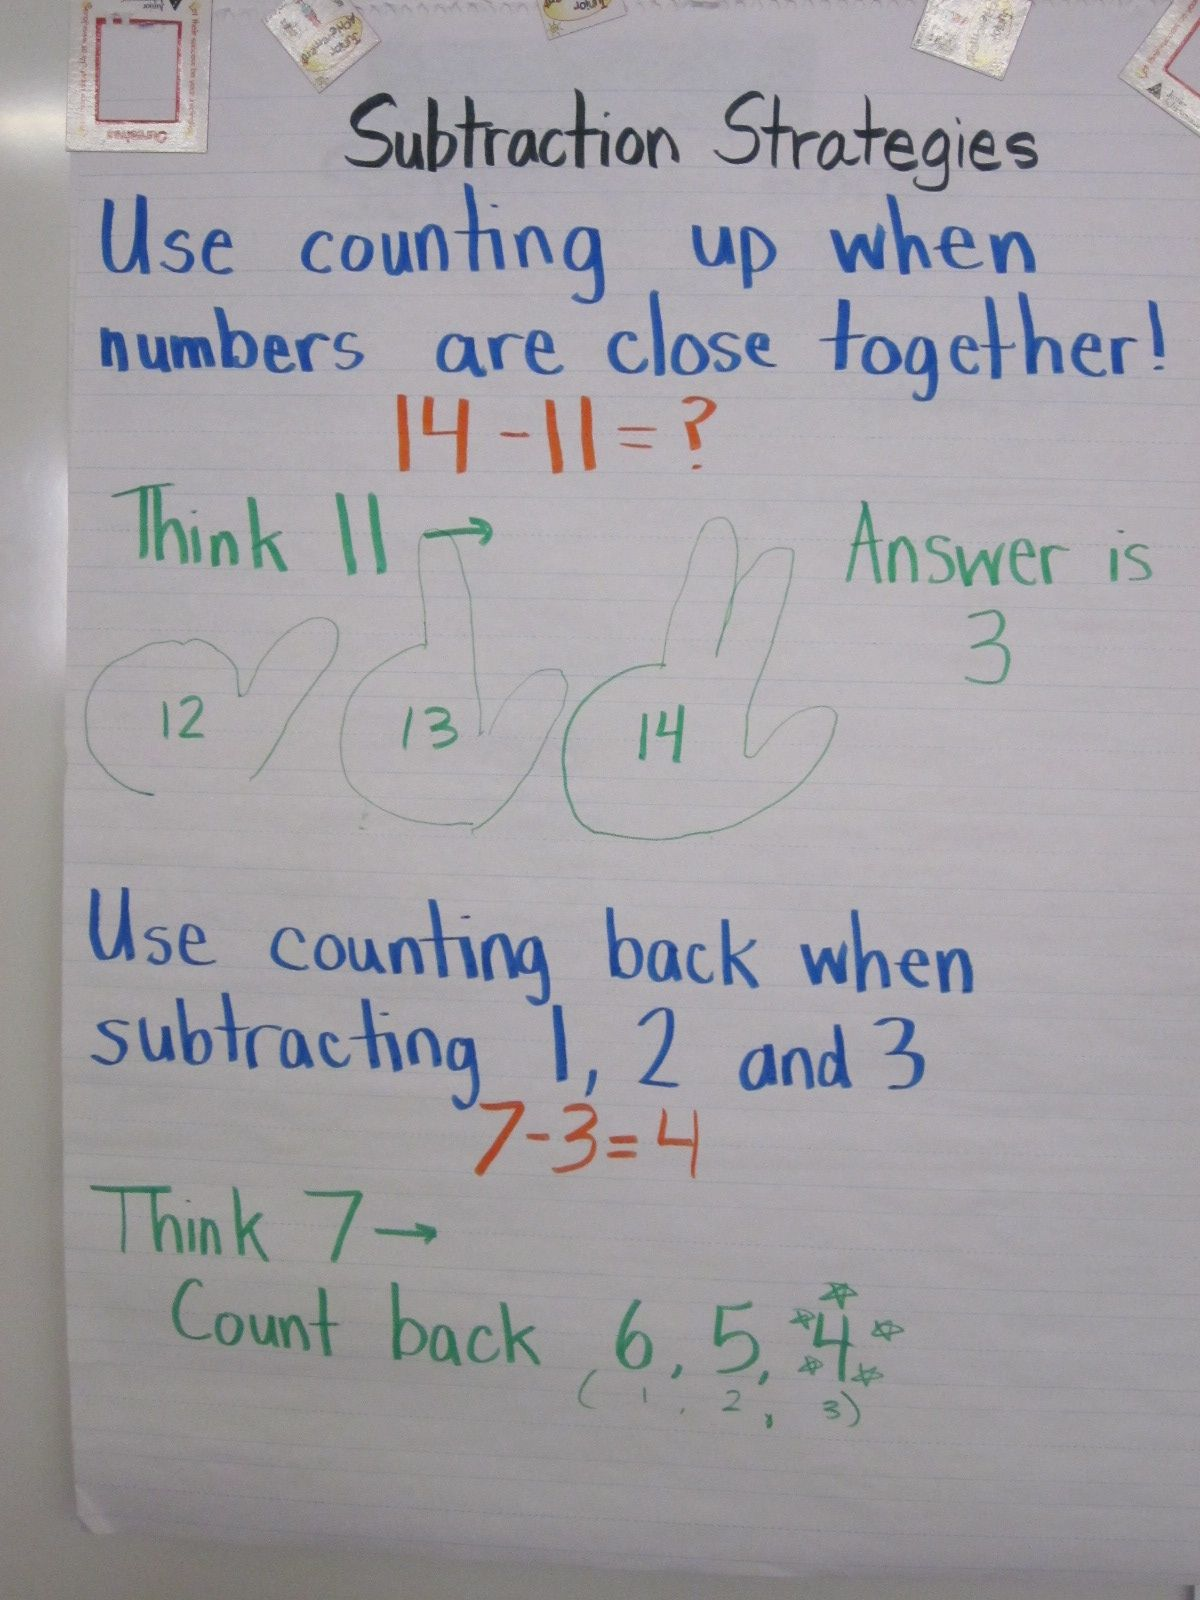 Counting Up And Counting Back Subtraction Strategies